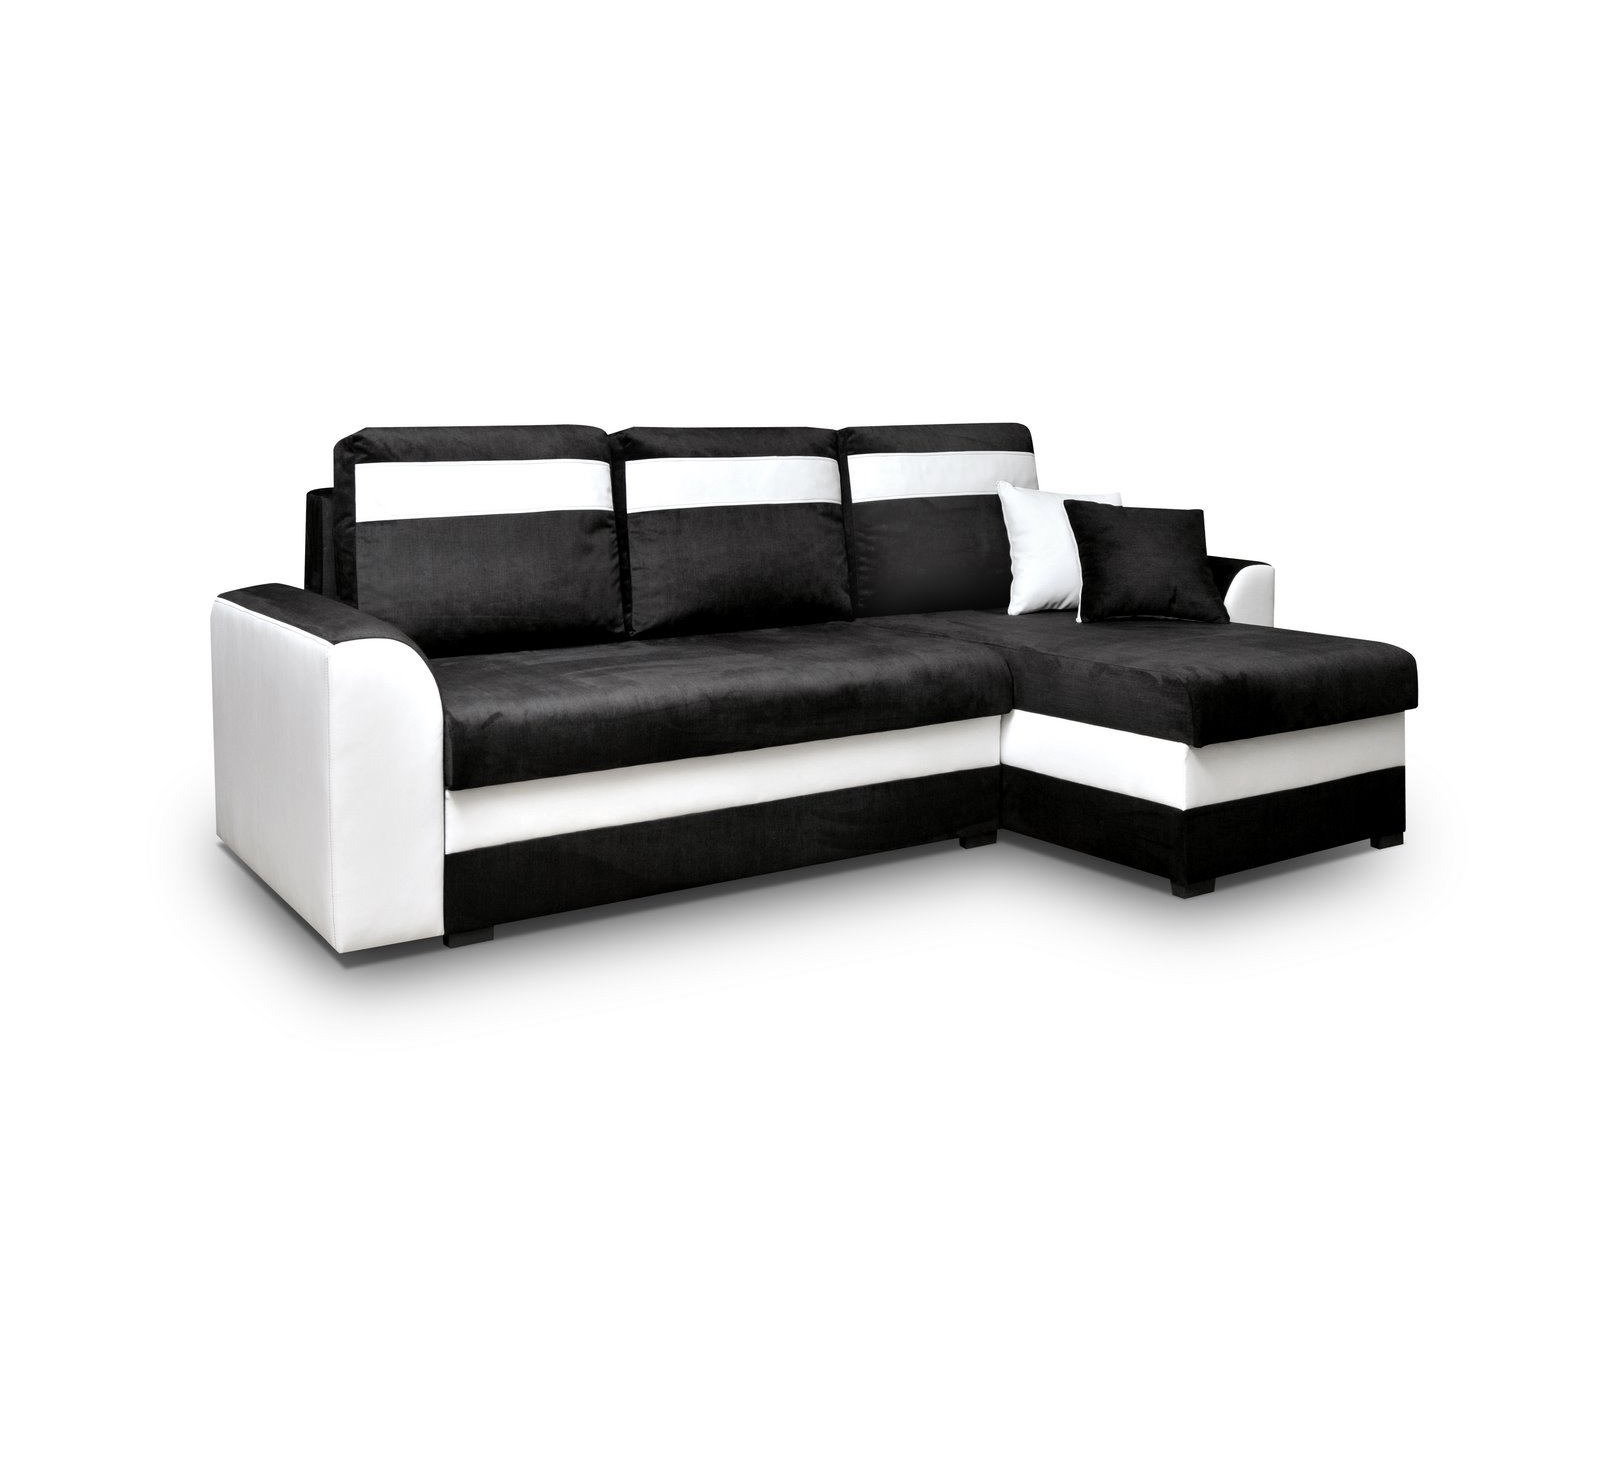 ecksofa sofa couch mit schlaffunktion und zwei bettkasten l form tommy schwarz ebay. Black Bedroom Furniture Sets. Home Design Ideas